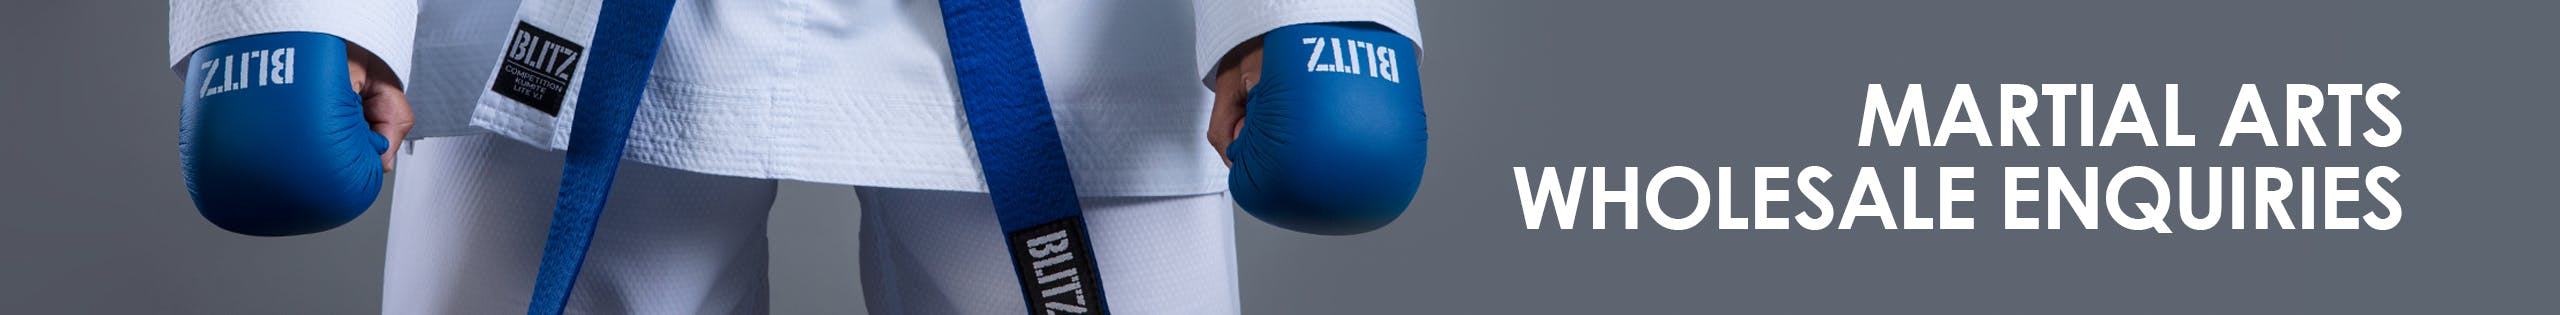 Blitz Martial Arts Wholesale Account Application